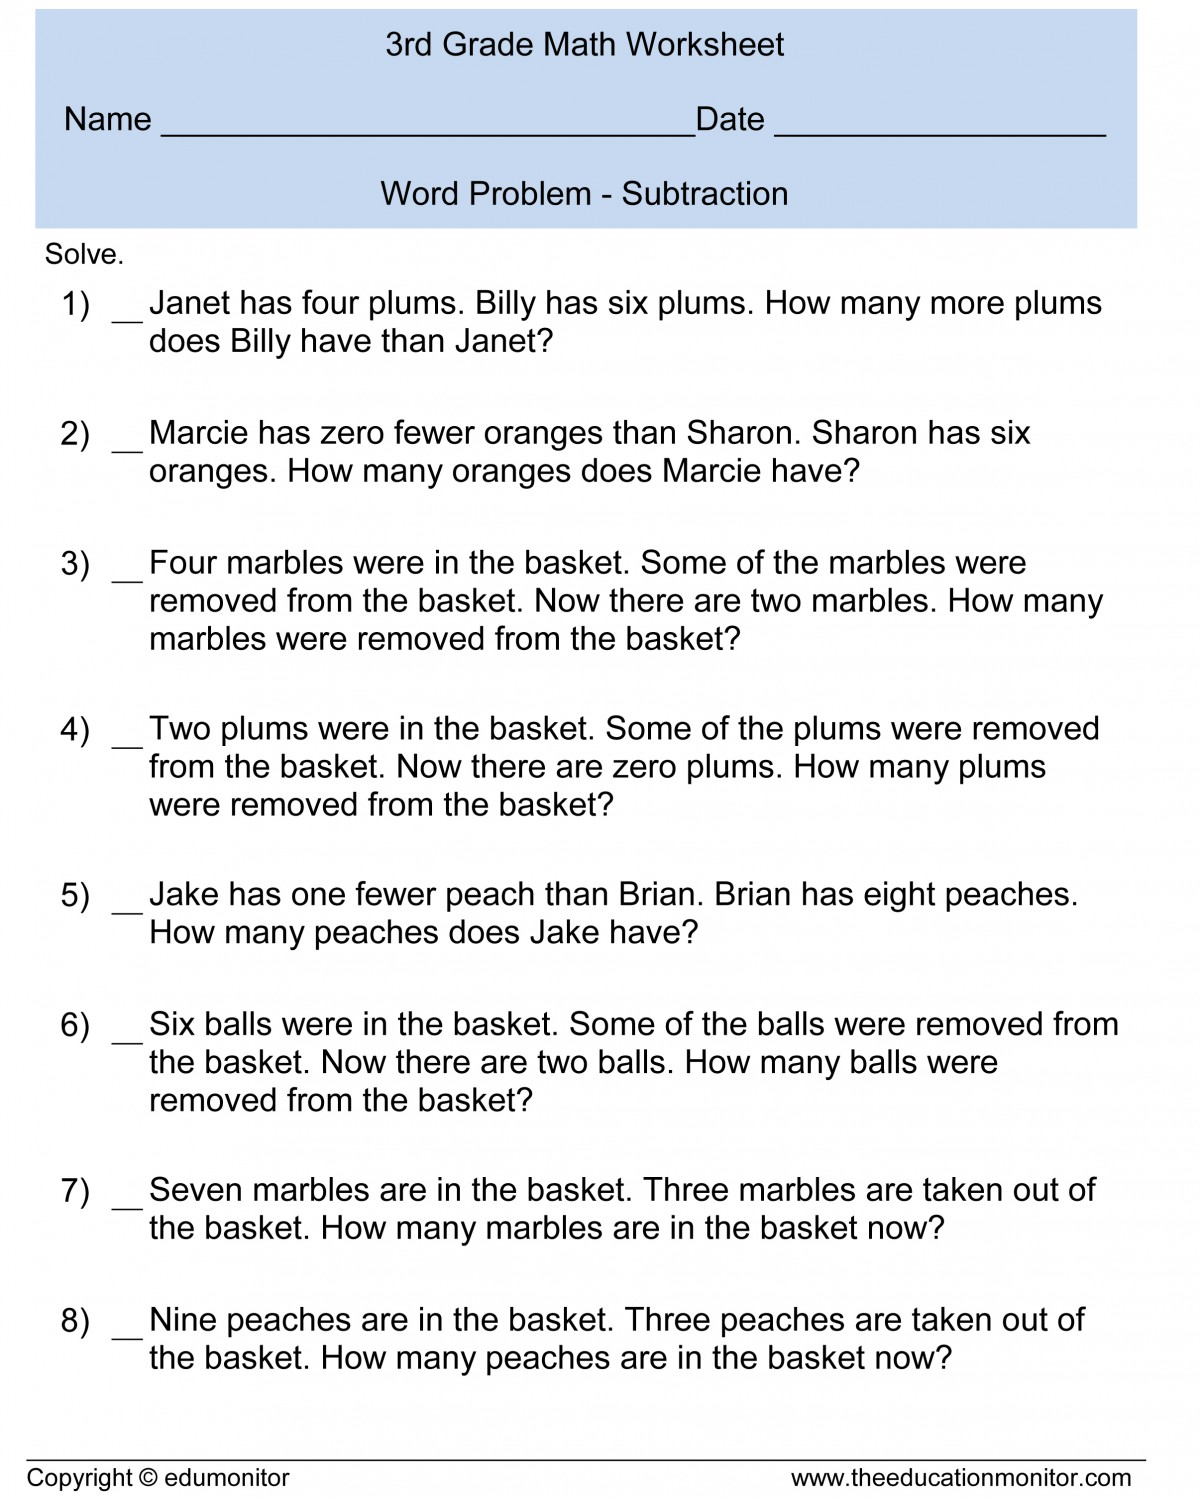 hight resolution of 3rd Grade Math Worksheets Addition Word Problems   Printable Worksheets and  Activities for Teachers